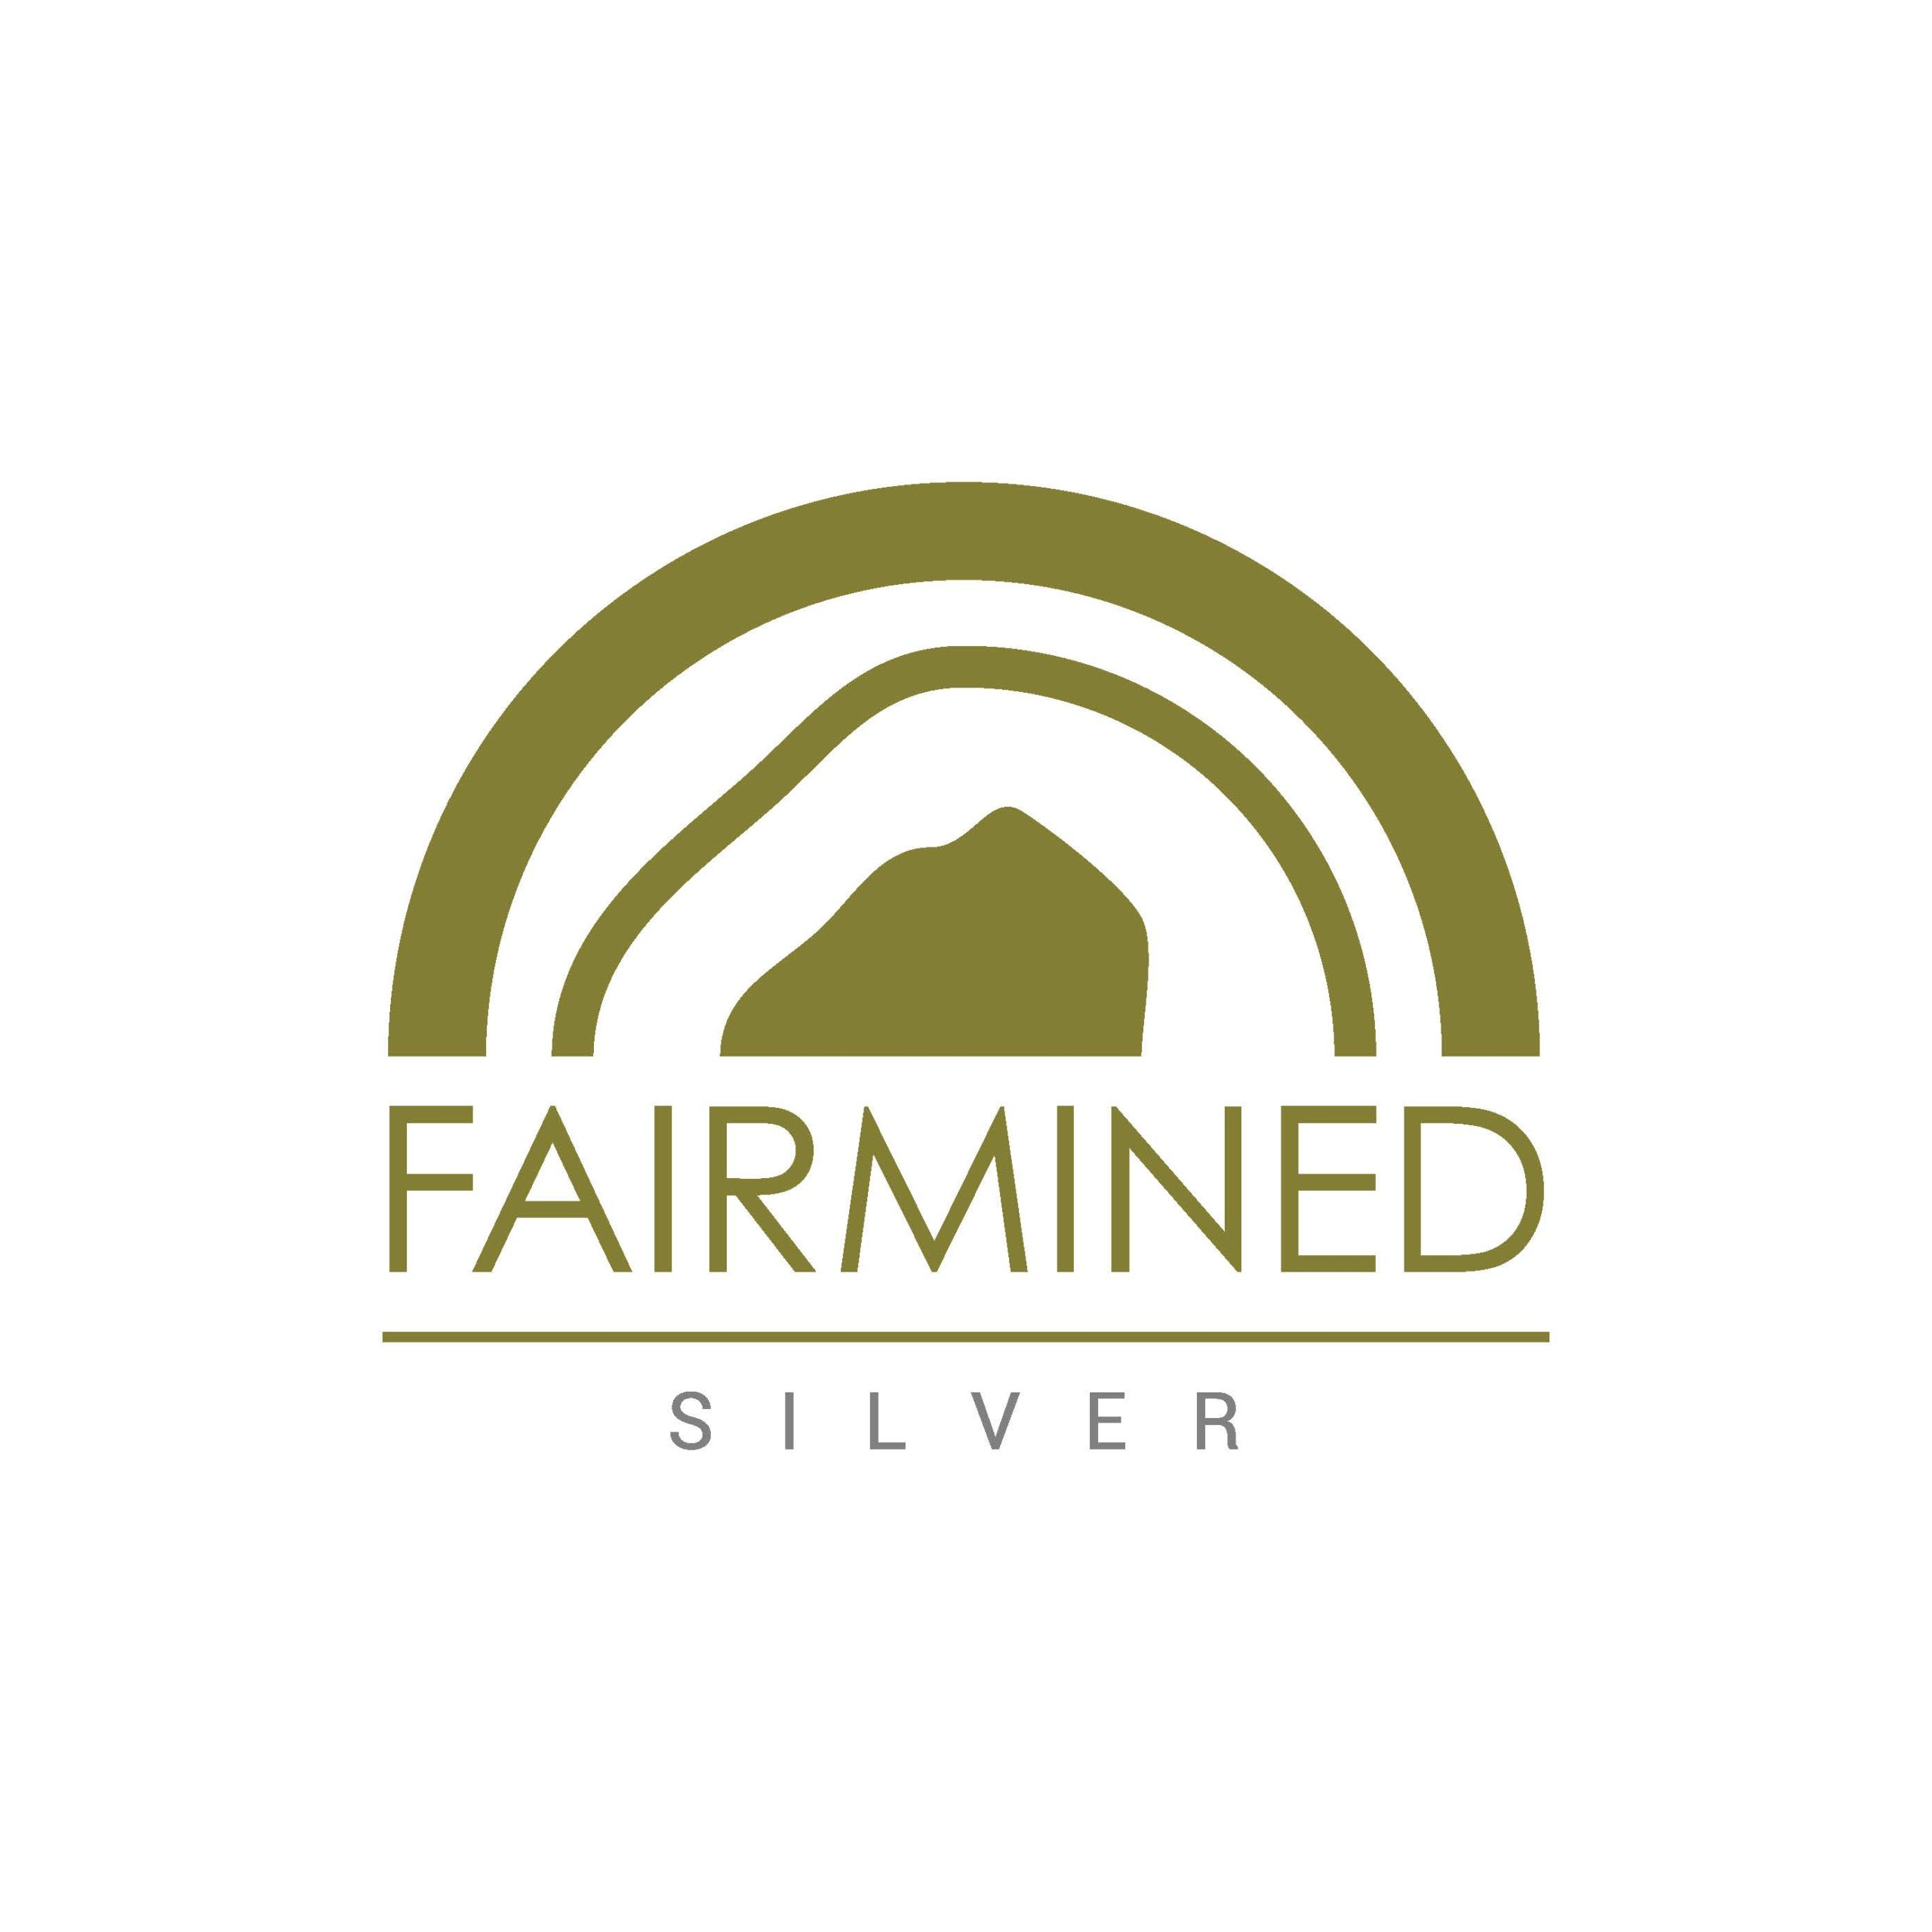 Fairmined silver logo